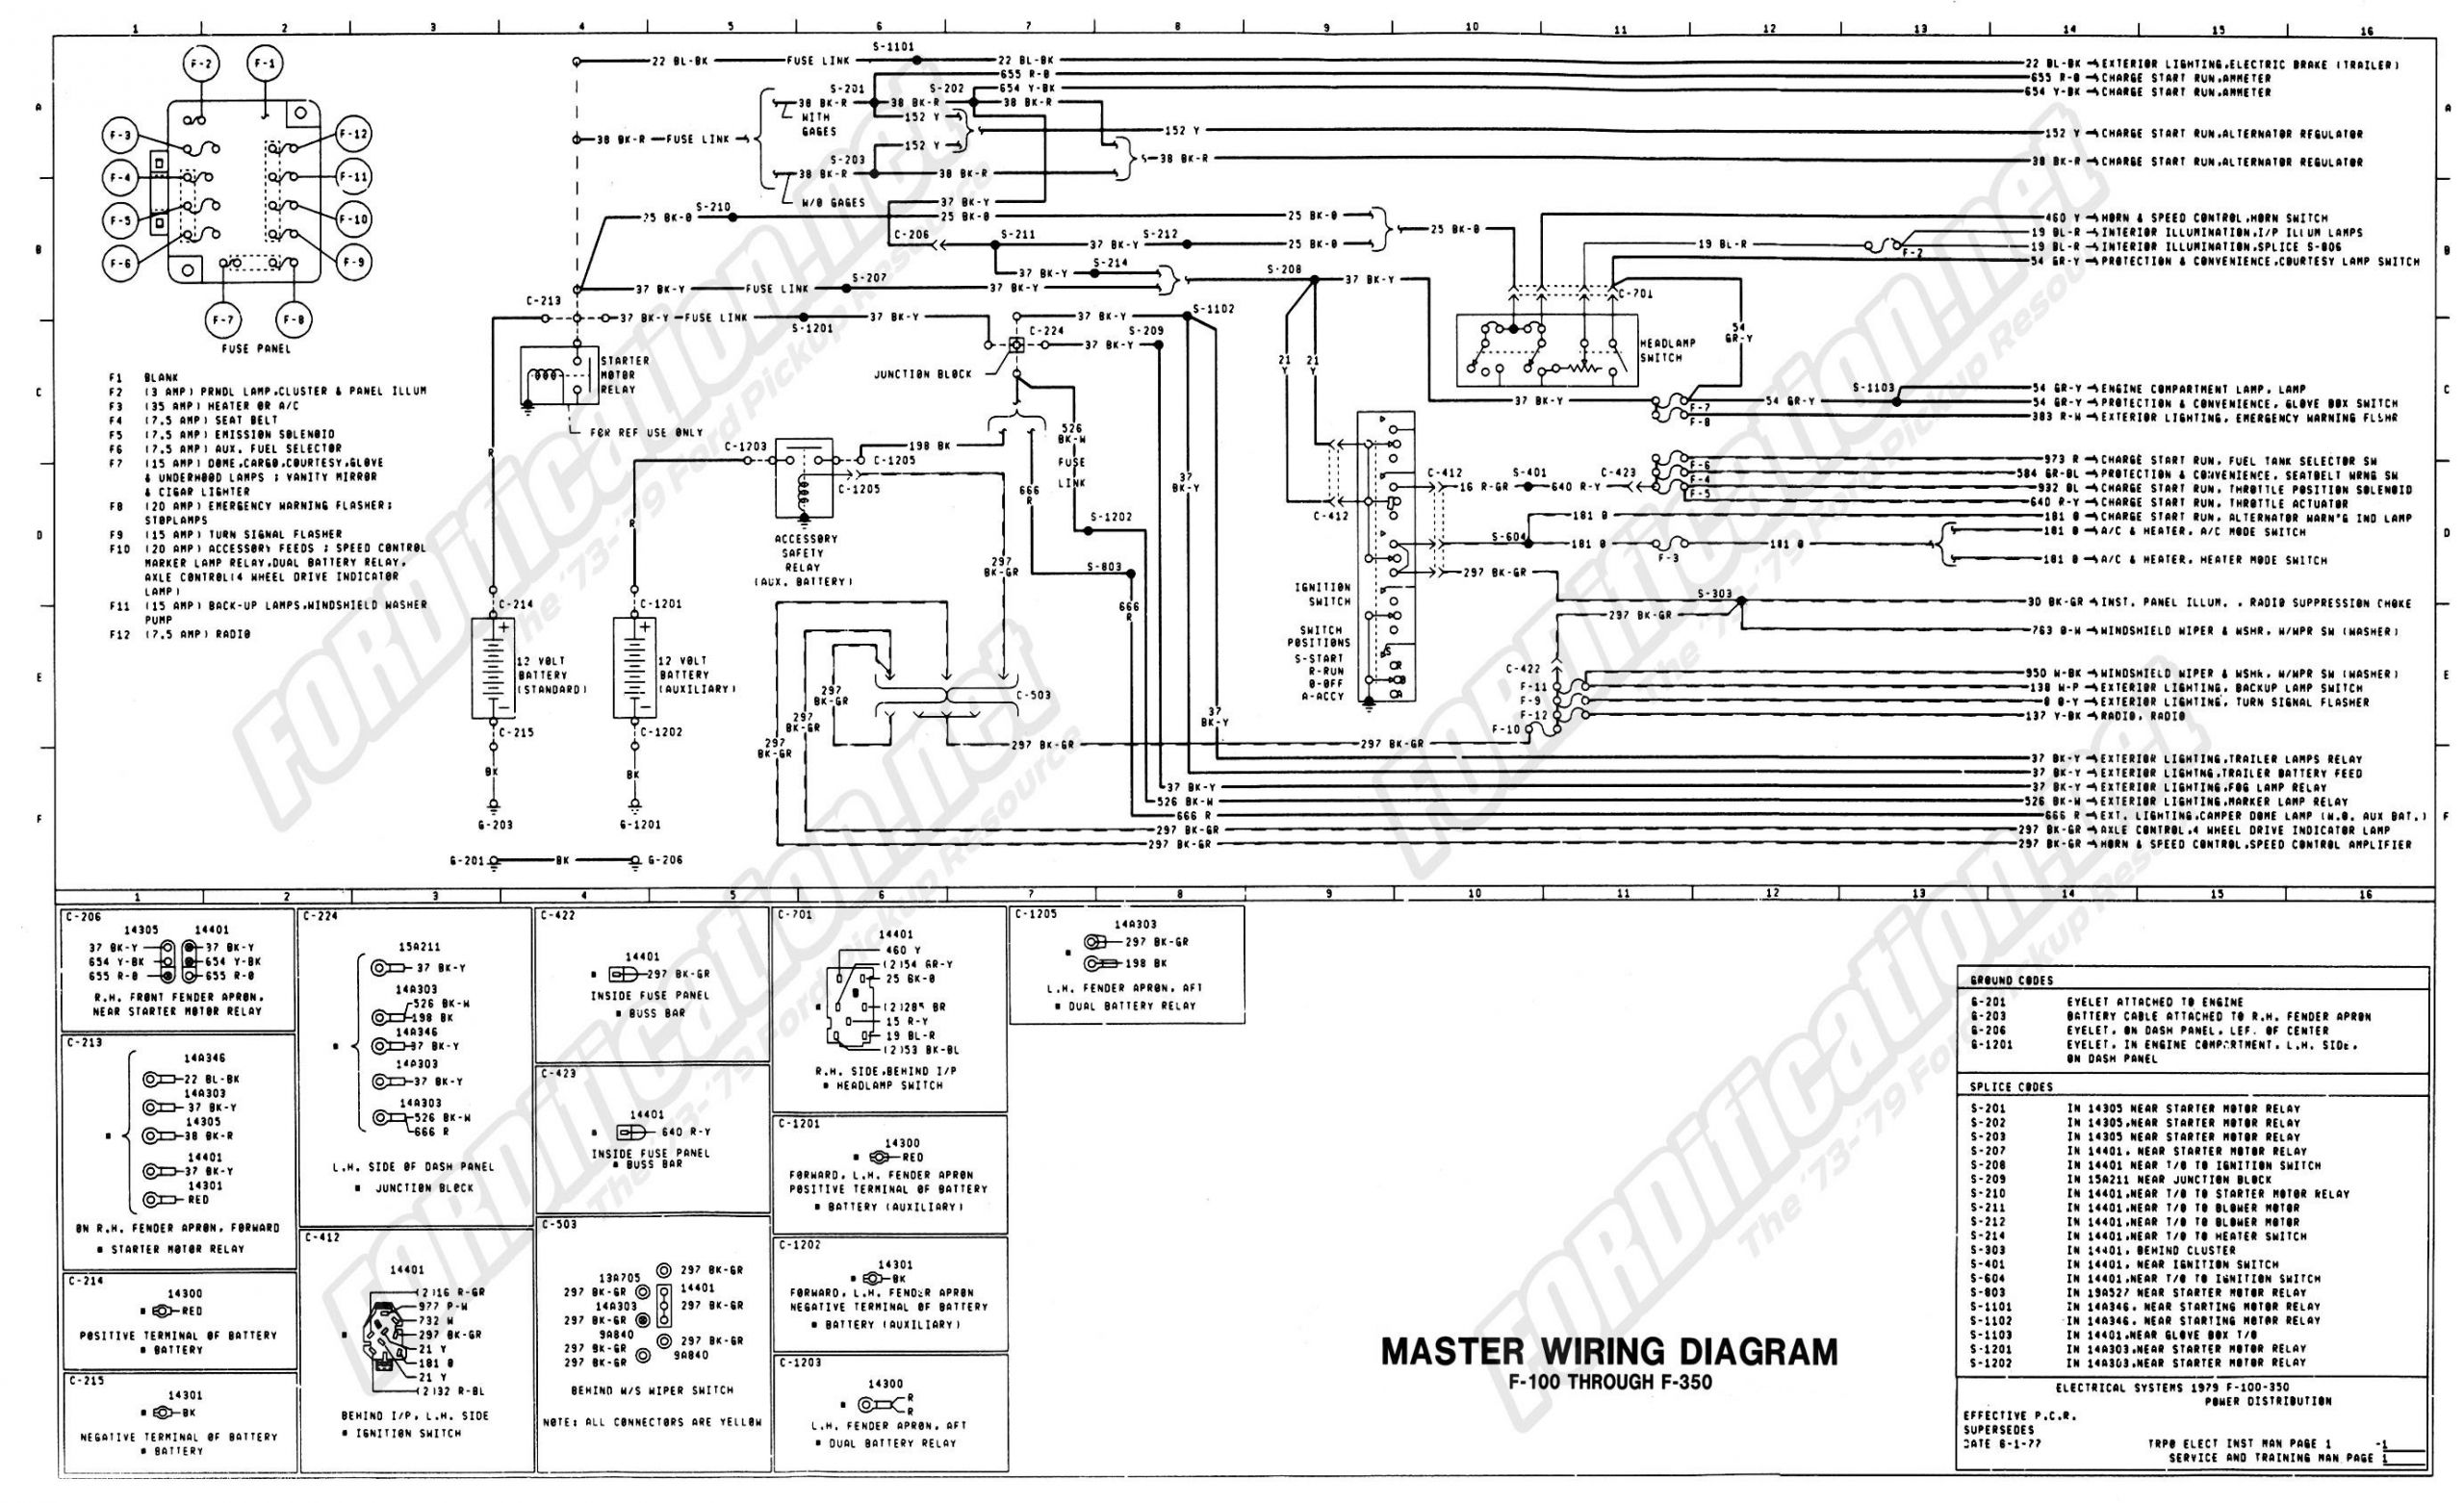 2000 ford F150 Ignition Wiring 2000 F250 Headlight Switch Wiring Diagram Of 2000 ford F150 Ignition Wiring